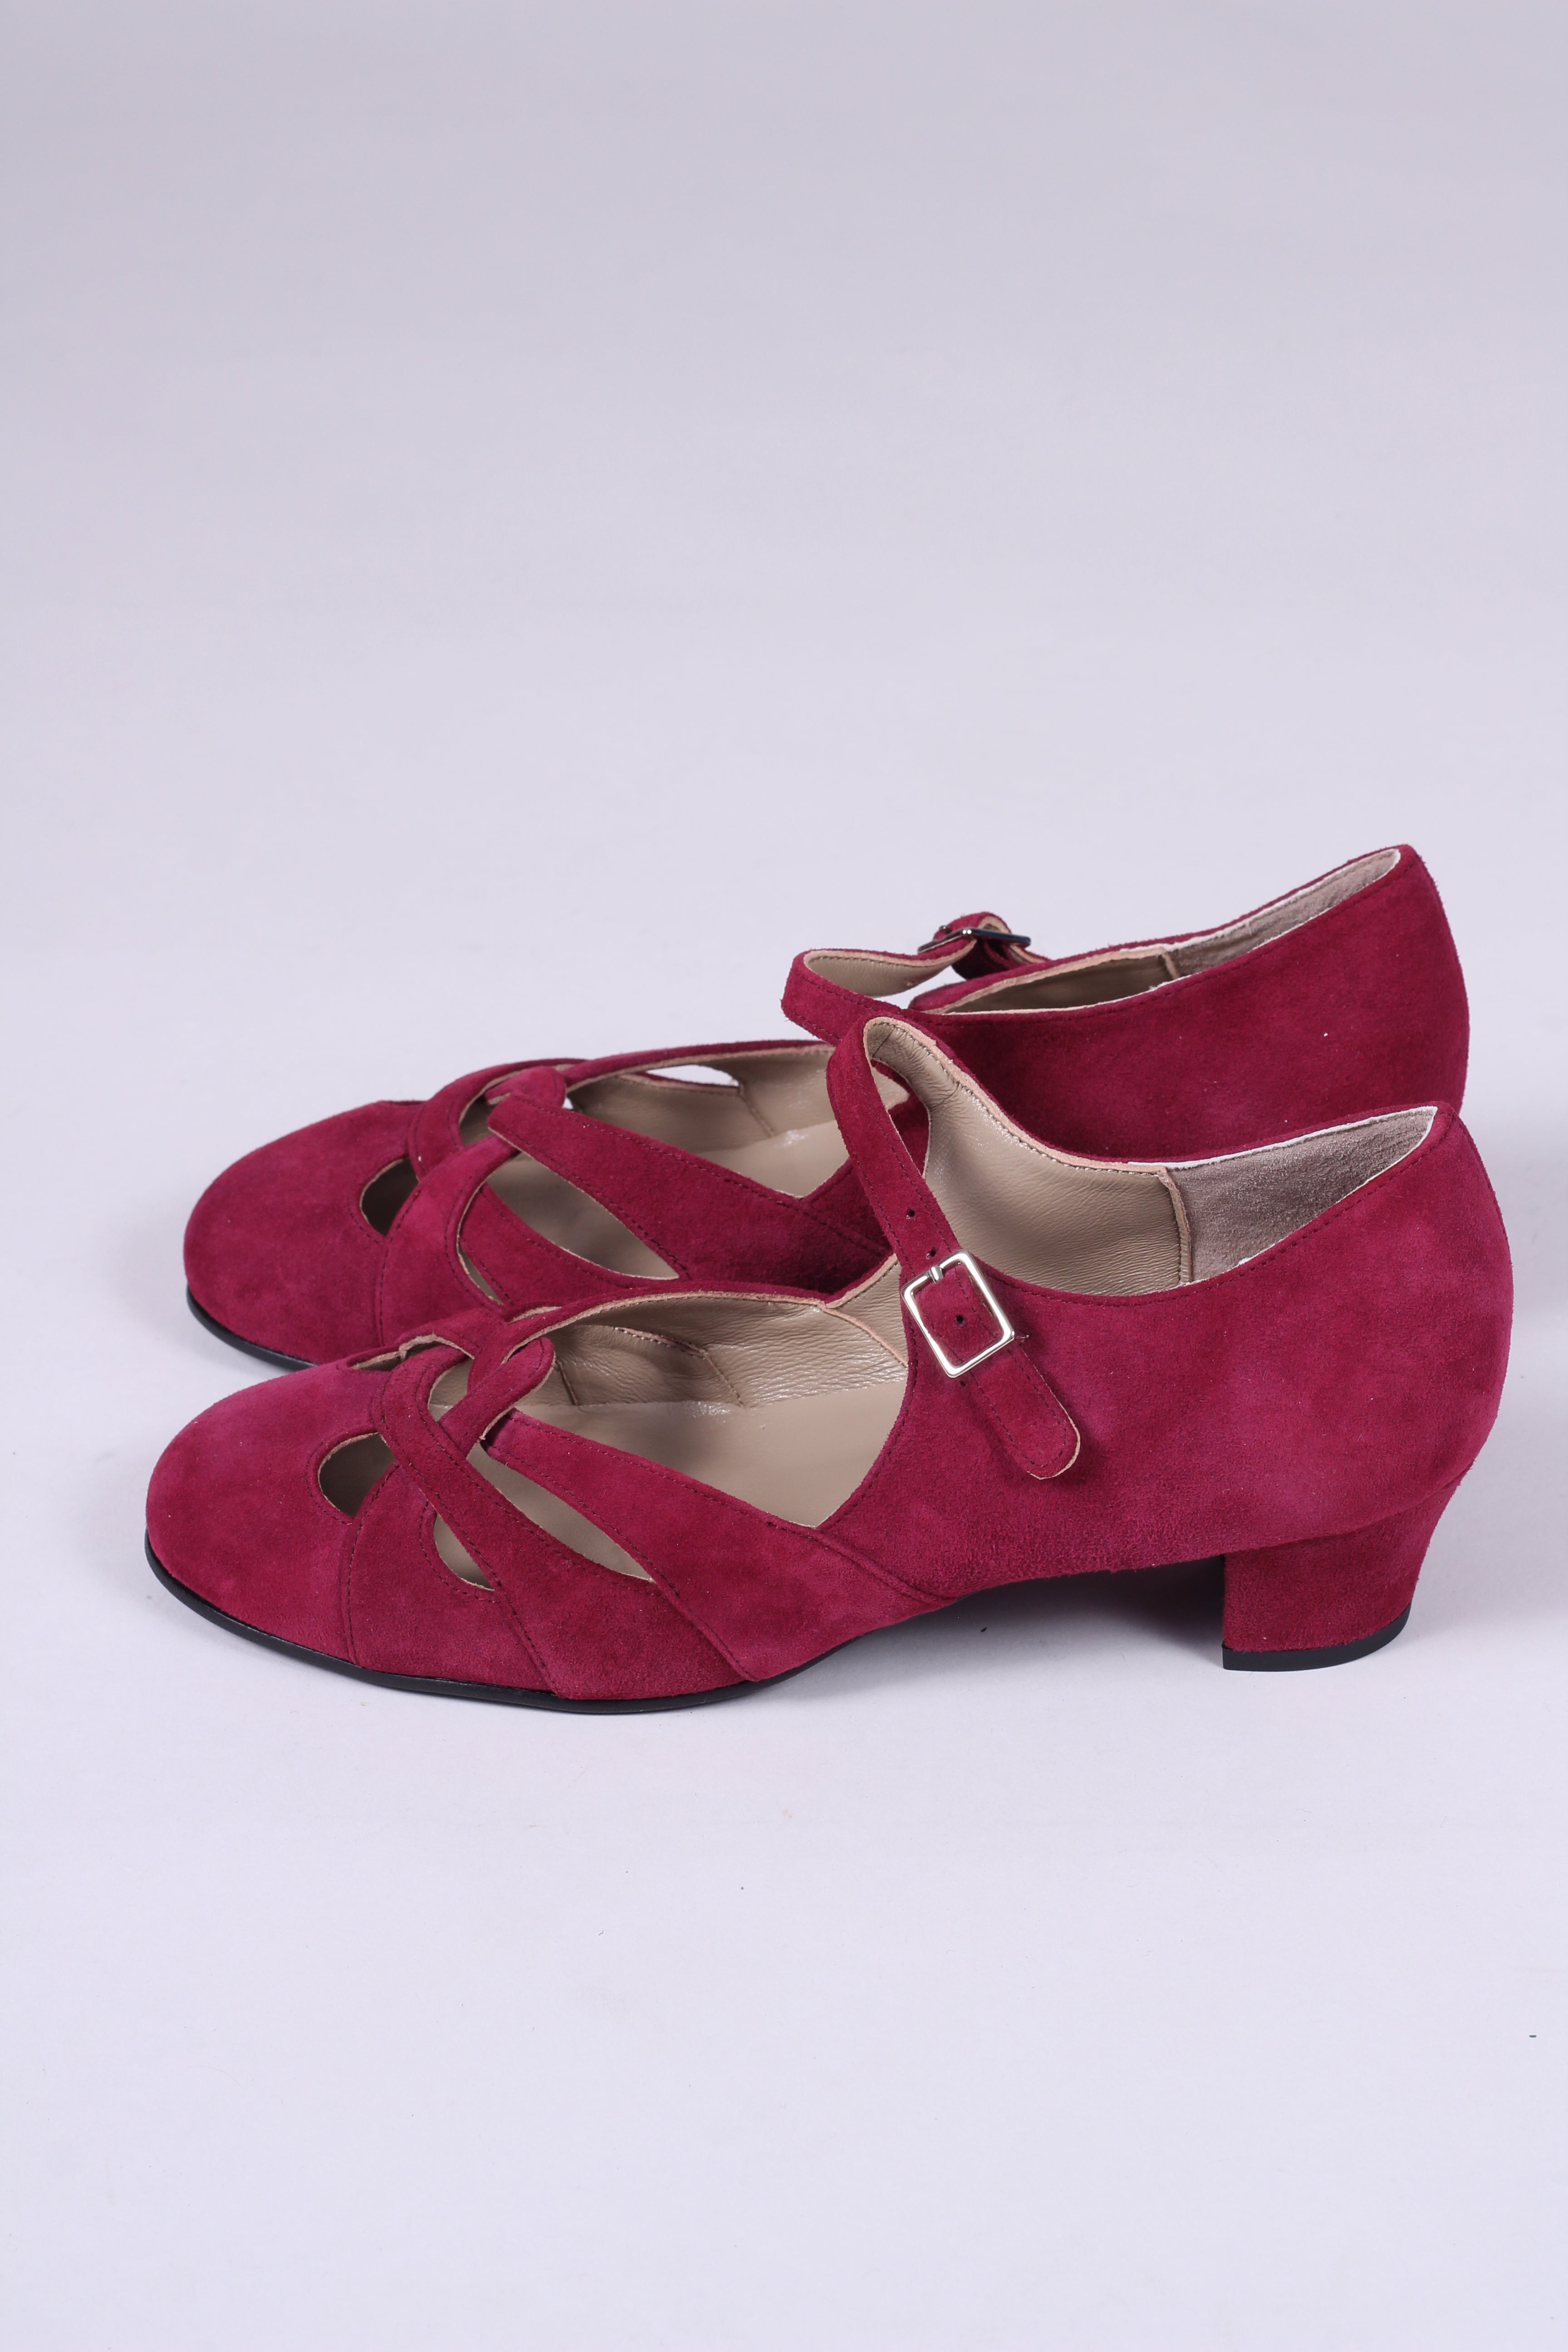 Everyday 1930s /1940s style suede sandals - Burgundy red - Ida